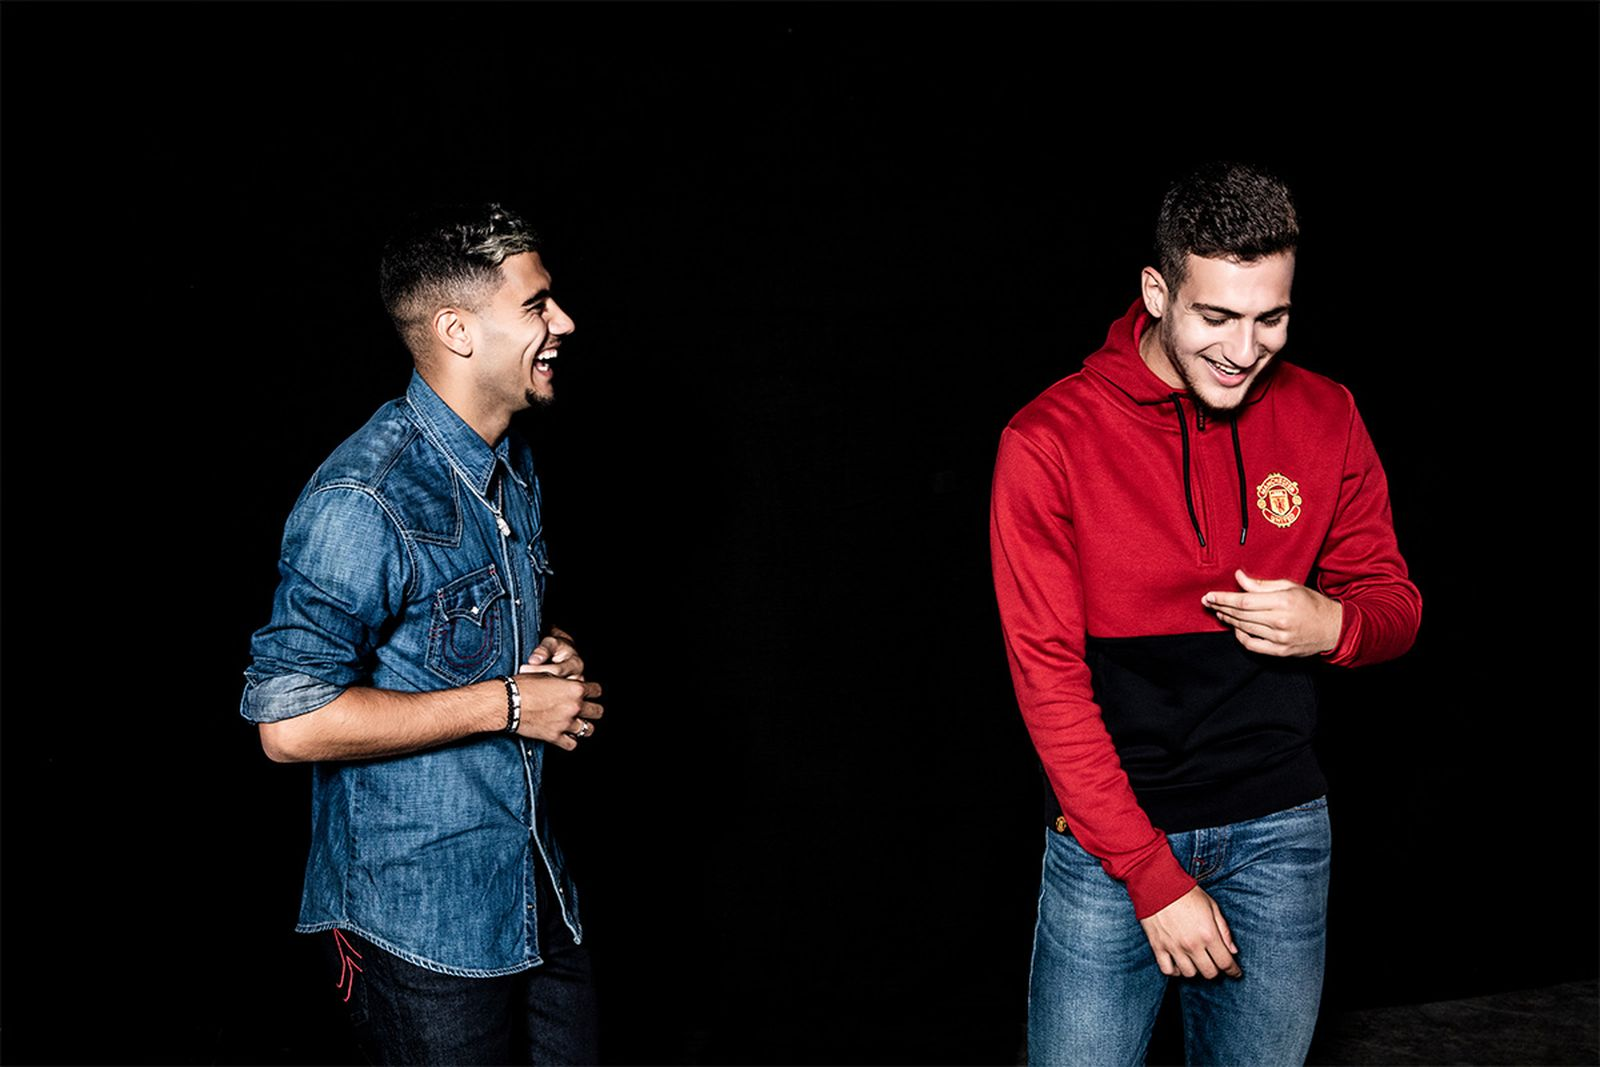 true religion manchester united collection